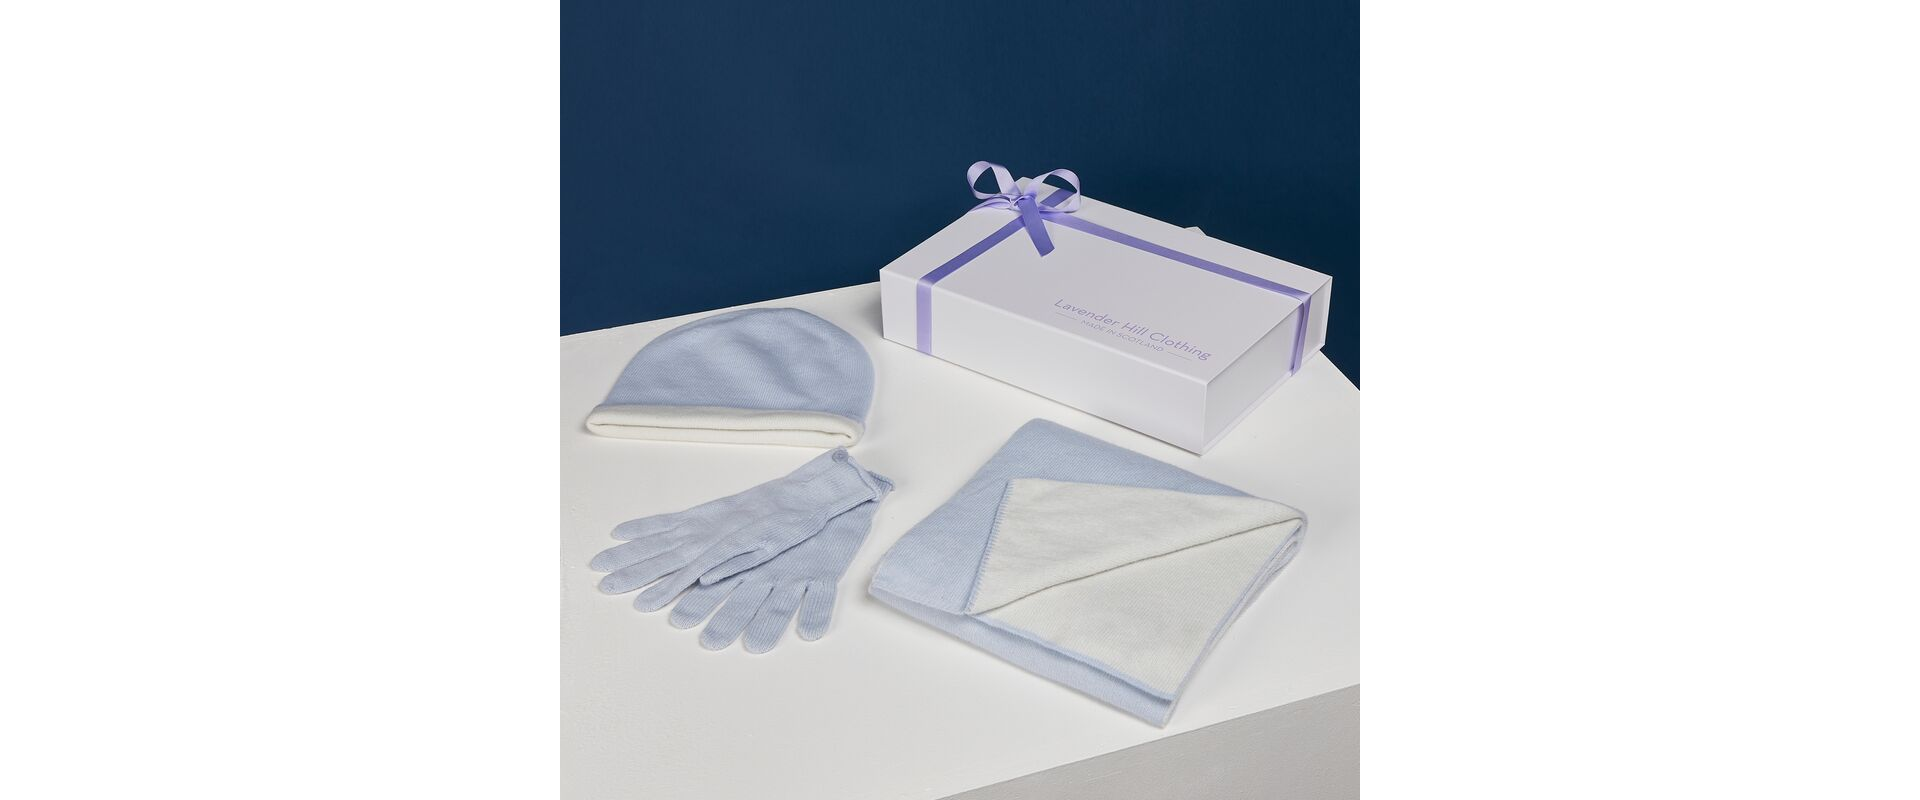 Blue cashmere gift set including cashmere hat, scarf, gloves and luxury gift box.